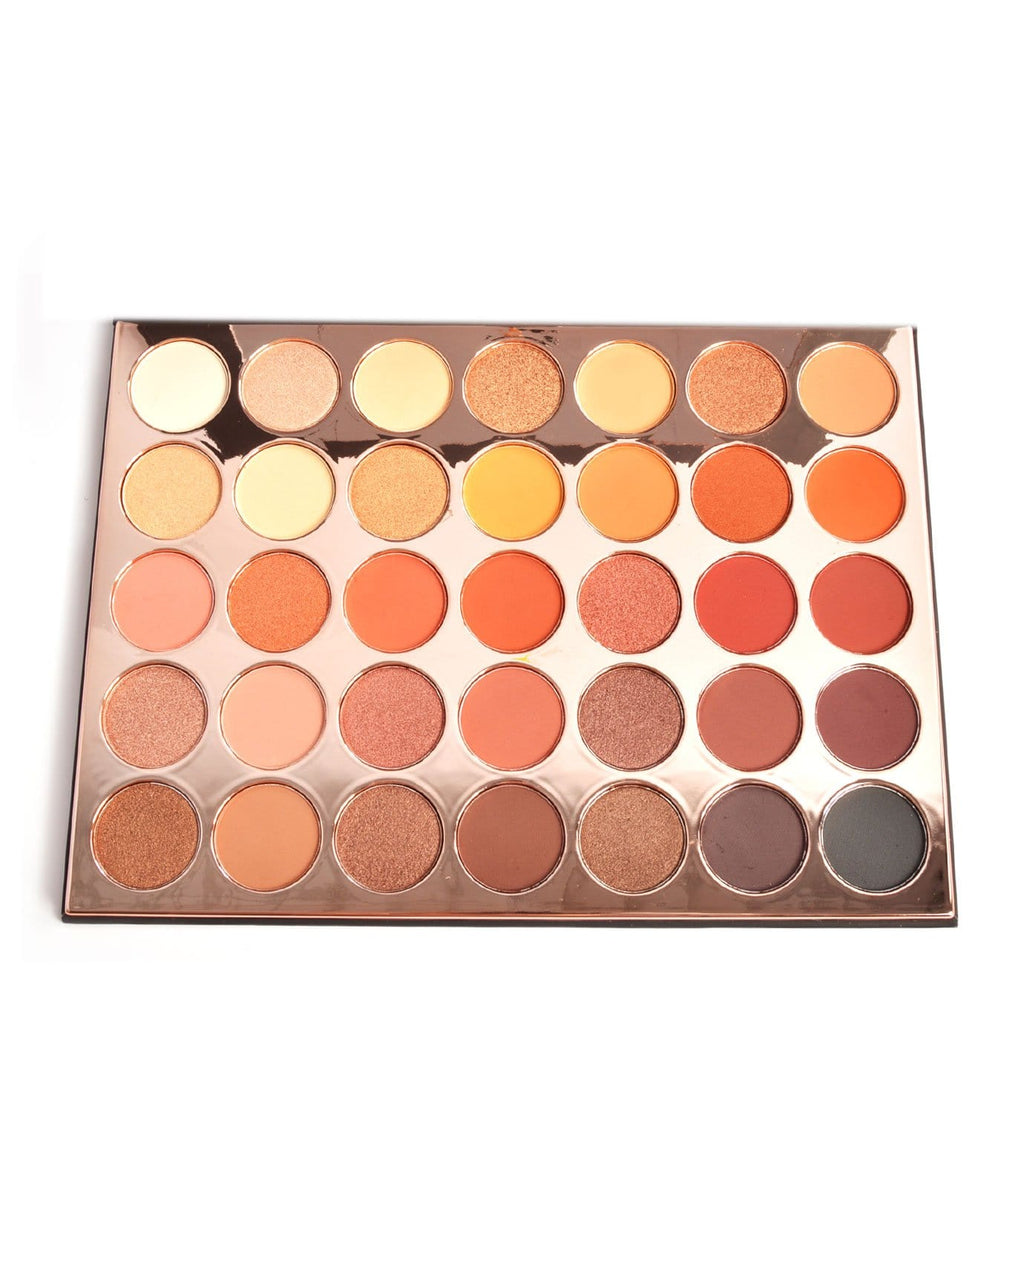 Kara Beauty Right Up My Alley Pro Shadow Palette